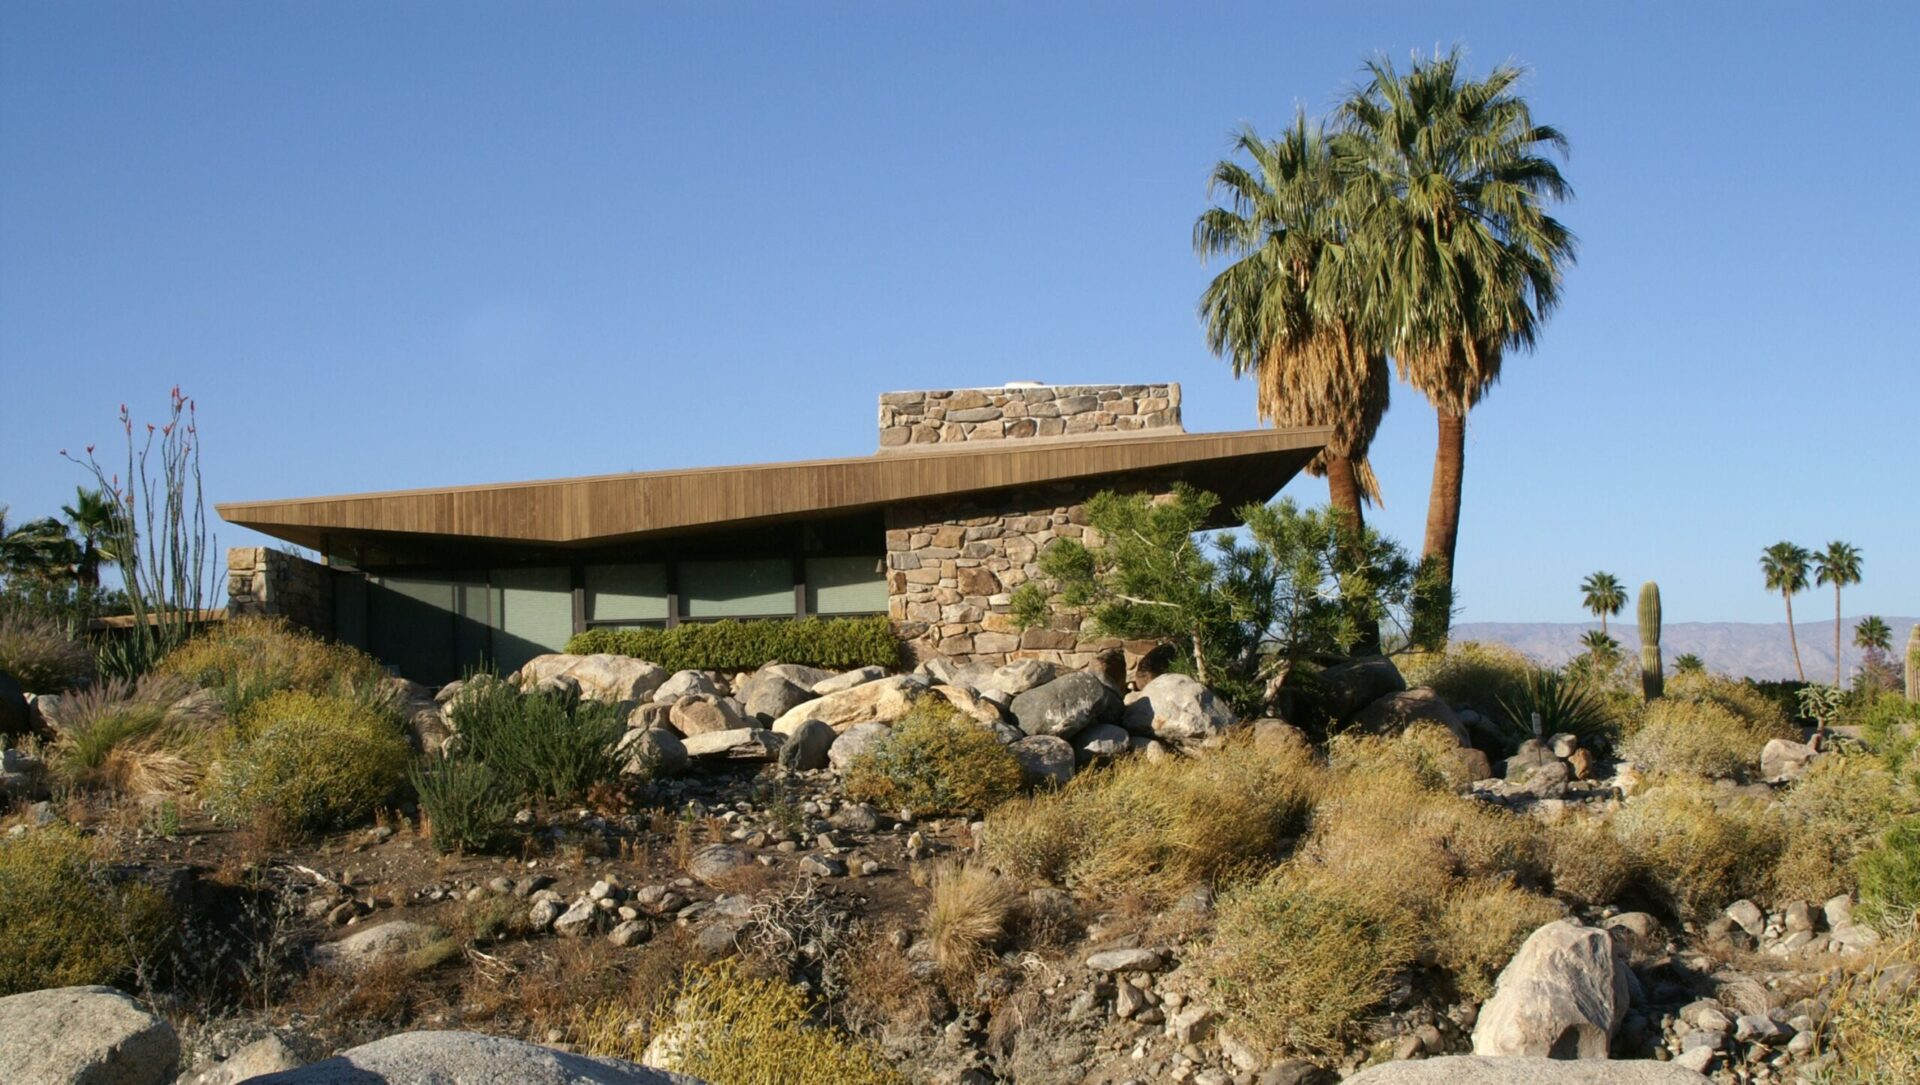 Edris House  by architect Stewart Williams in palm springs